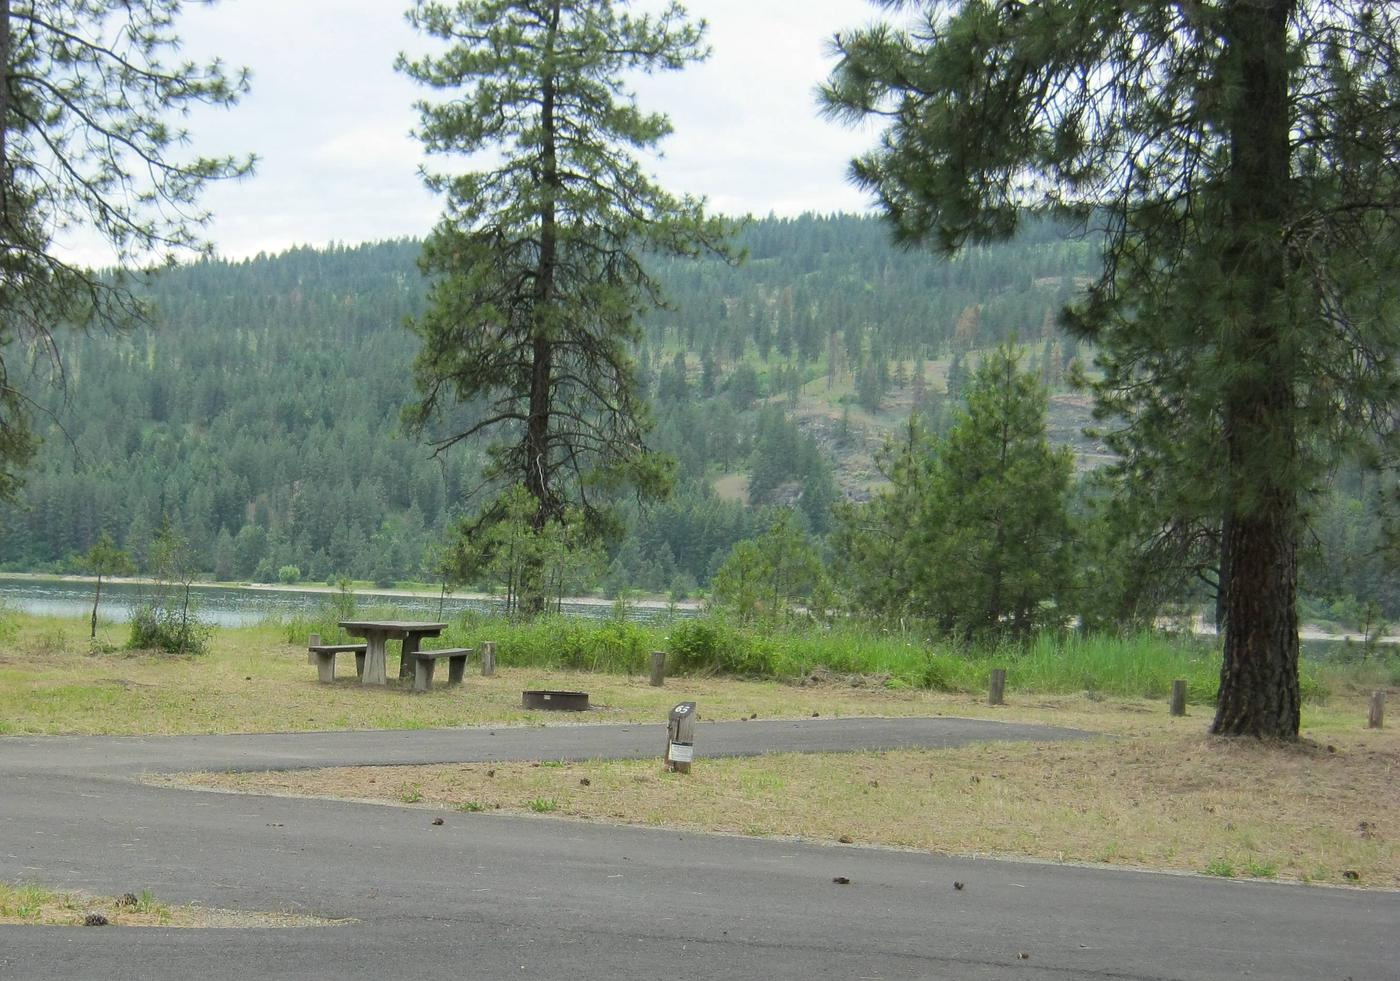 Site 65site 65, Back in, Trees and lake in background